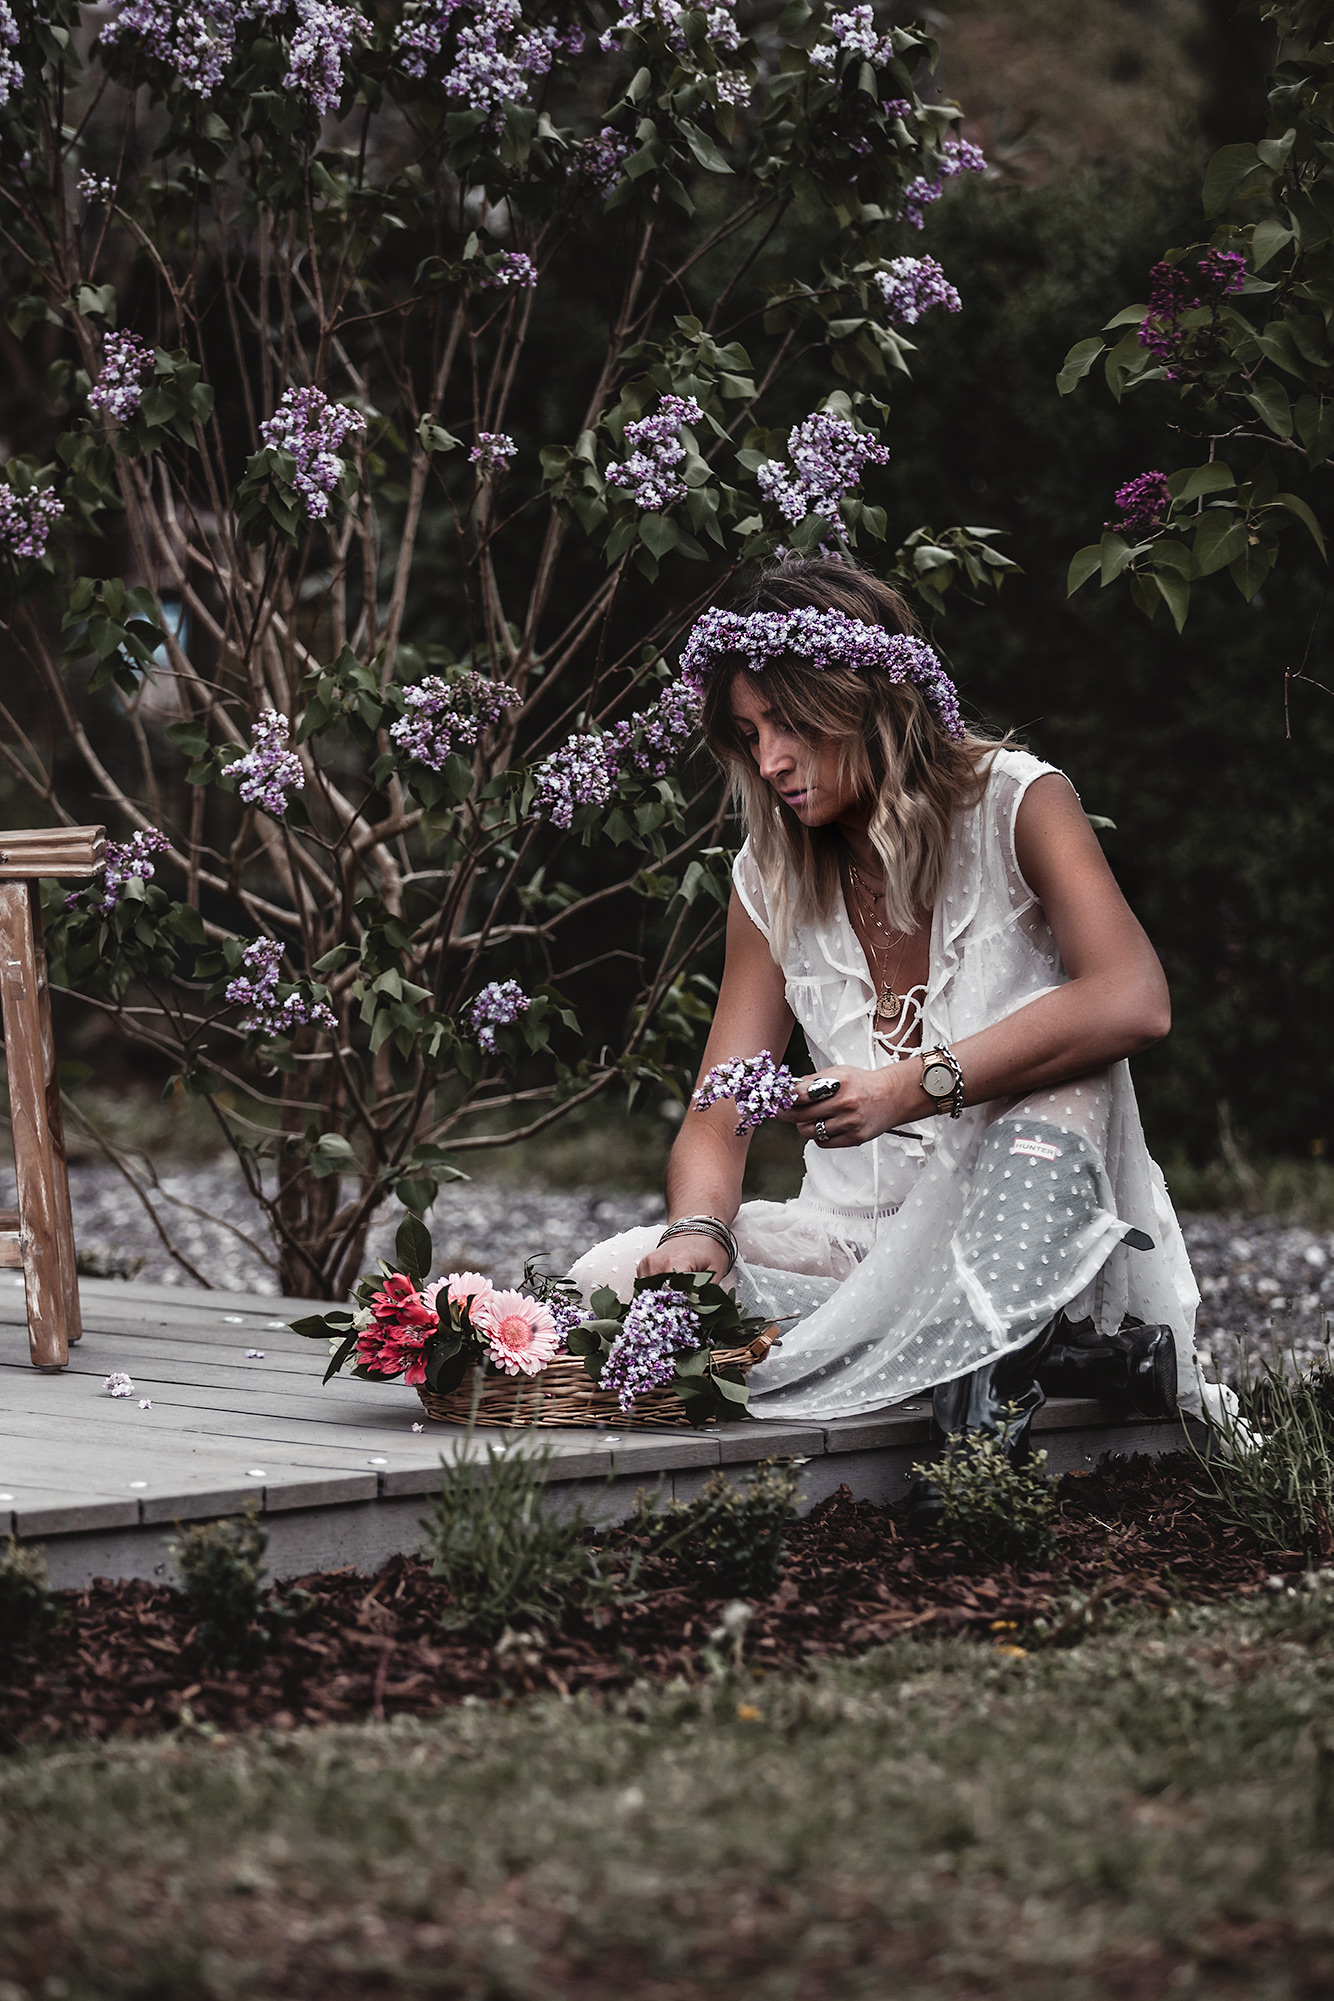 The time of white dresses is officially here. Keep reading to have a taste of the most beautiful voluminous, romantic, and broderie white dresses for spring and summer 2020, at super affordable prices, many of which are only under 30 €. White dress, flowers, May Day, lilac crown.